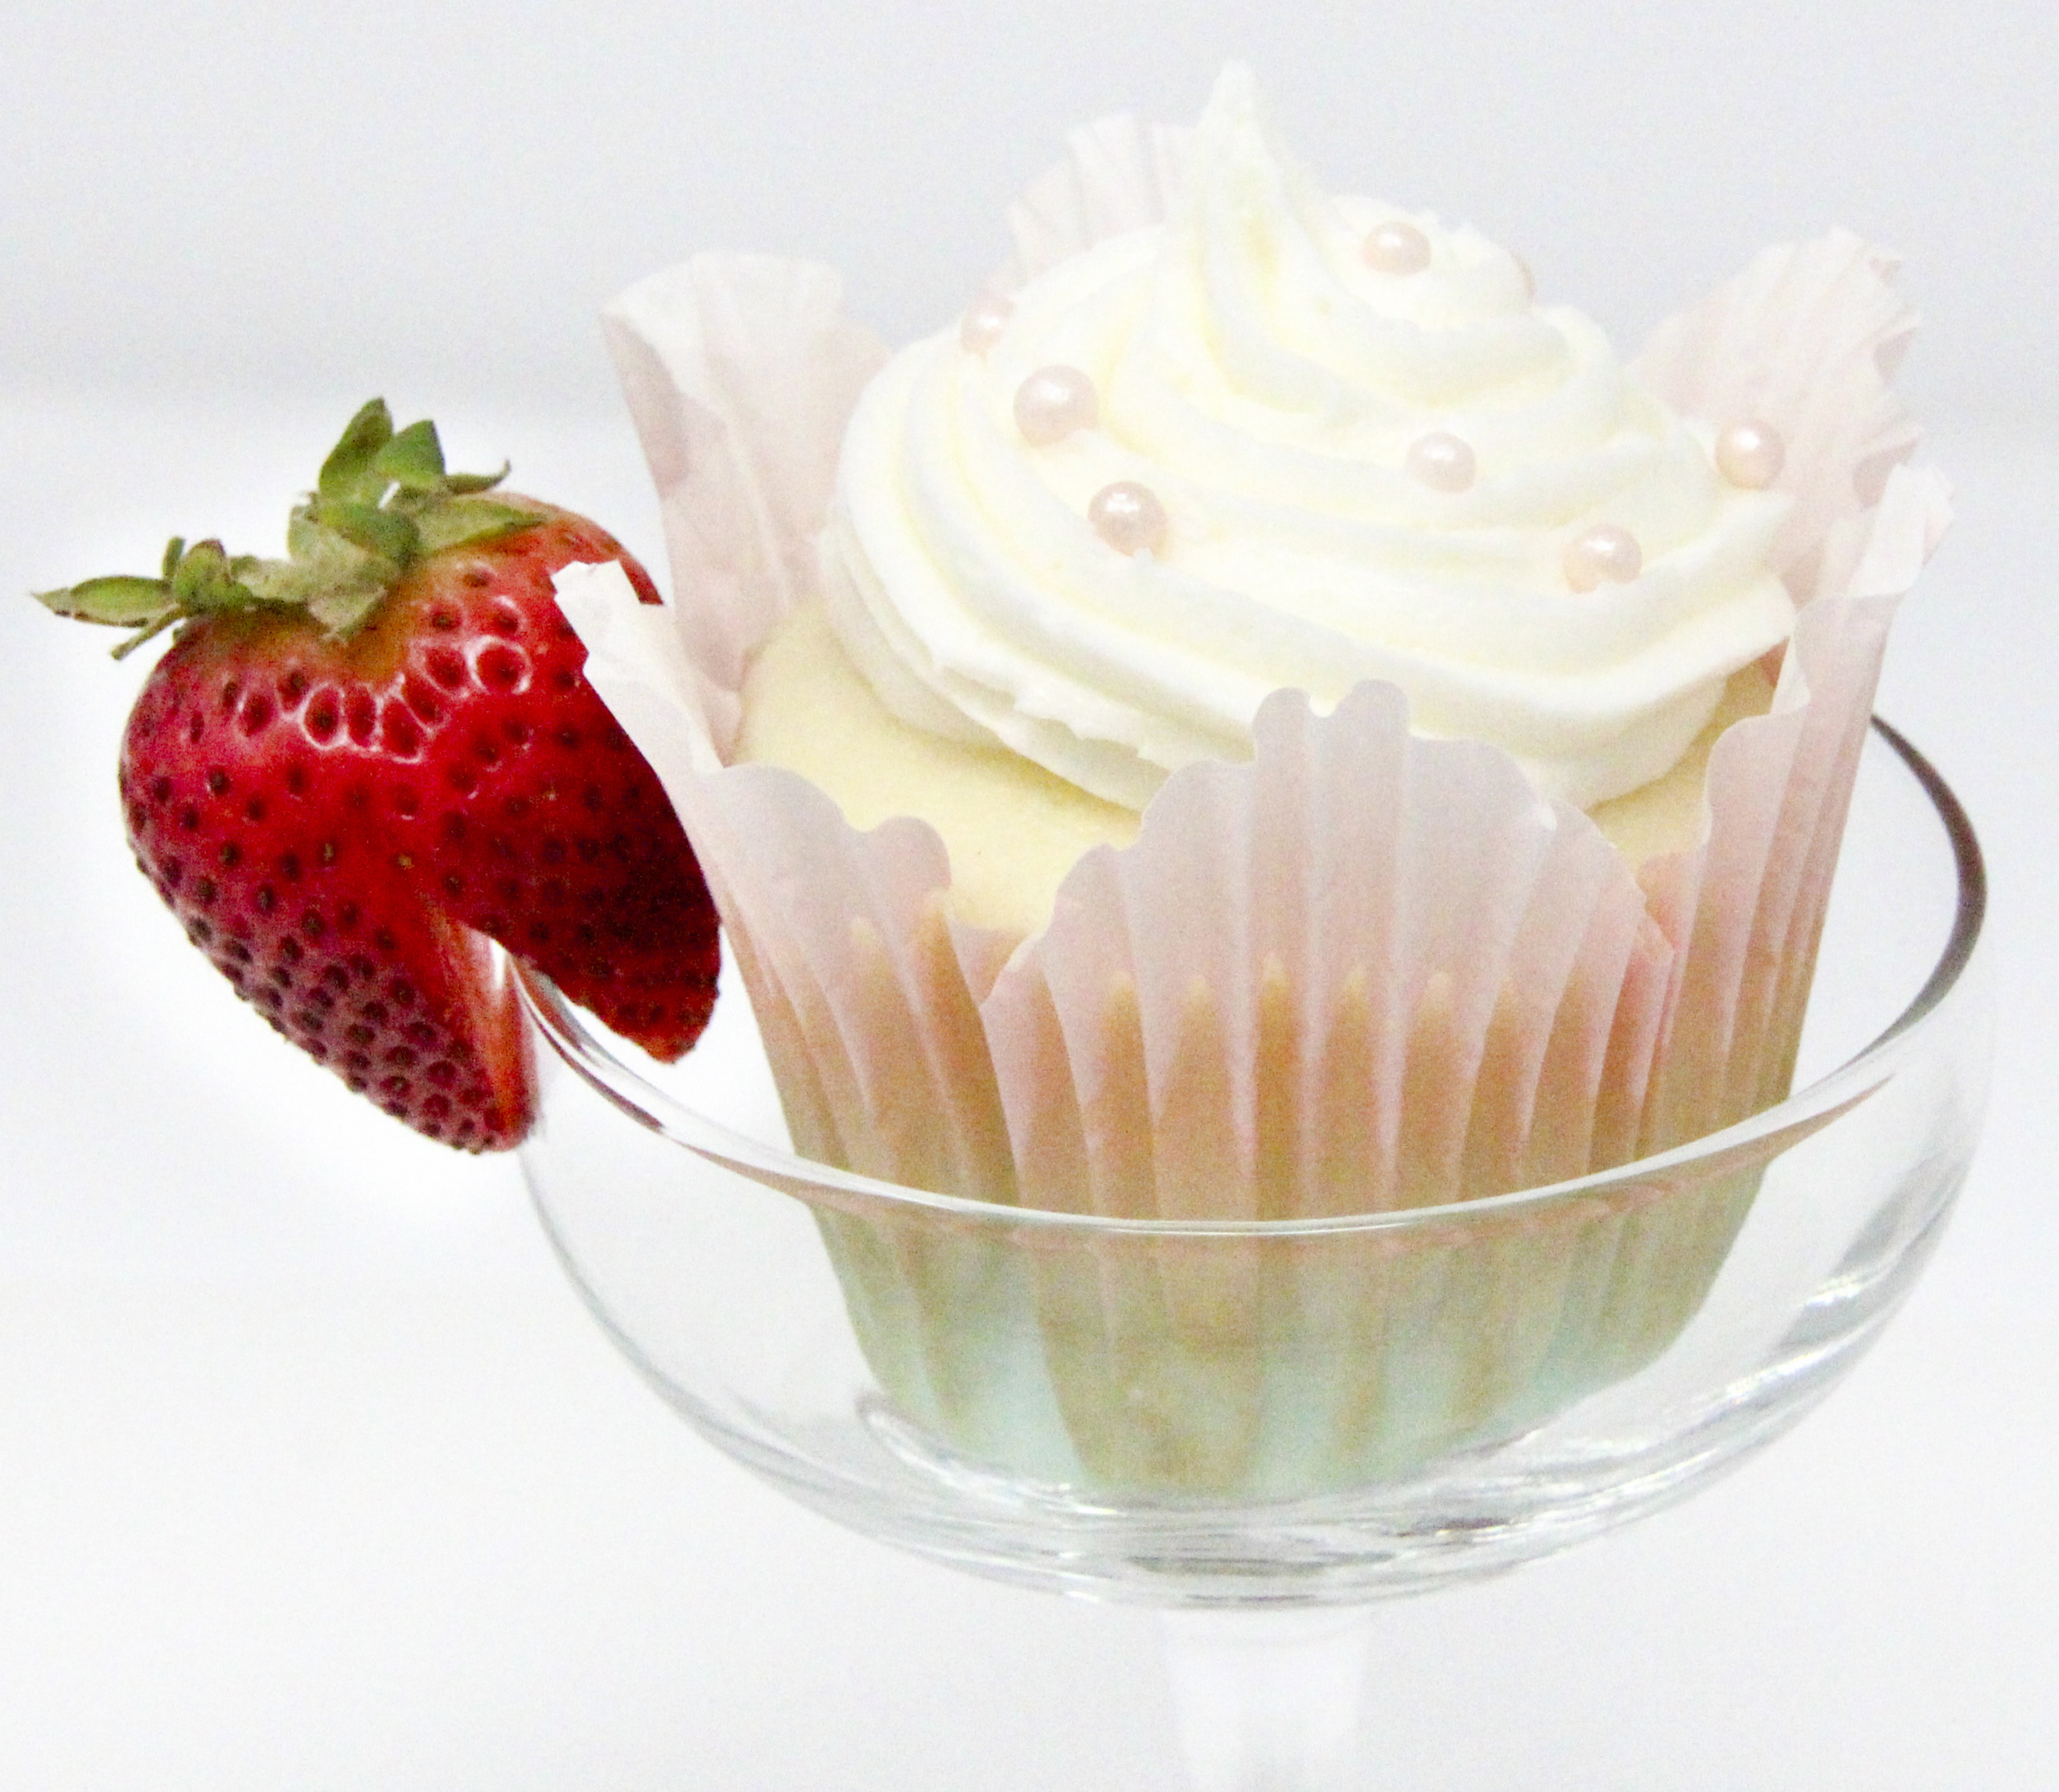 Champagne Cupcakes starts with a boxed mix (making this a quick dessert to mix up) and the champagne gives it a light, airy texture. A simply, creamy buttercream frosting makes for the perfect backdrop for any type of decoration or celebration. Recipe from FRAMED AND FROSTED by Kim Davis.